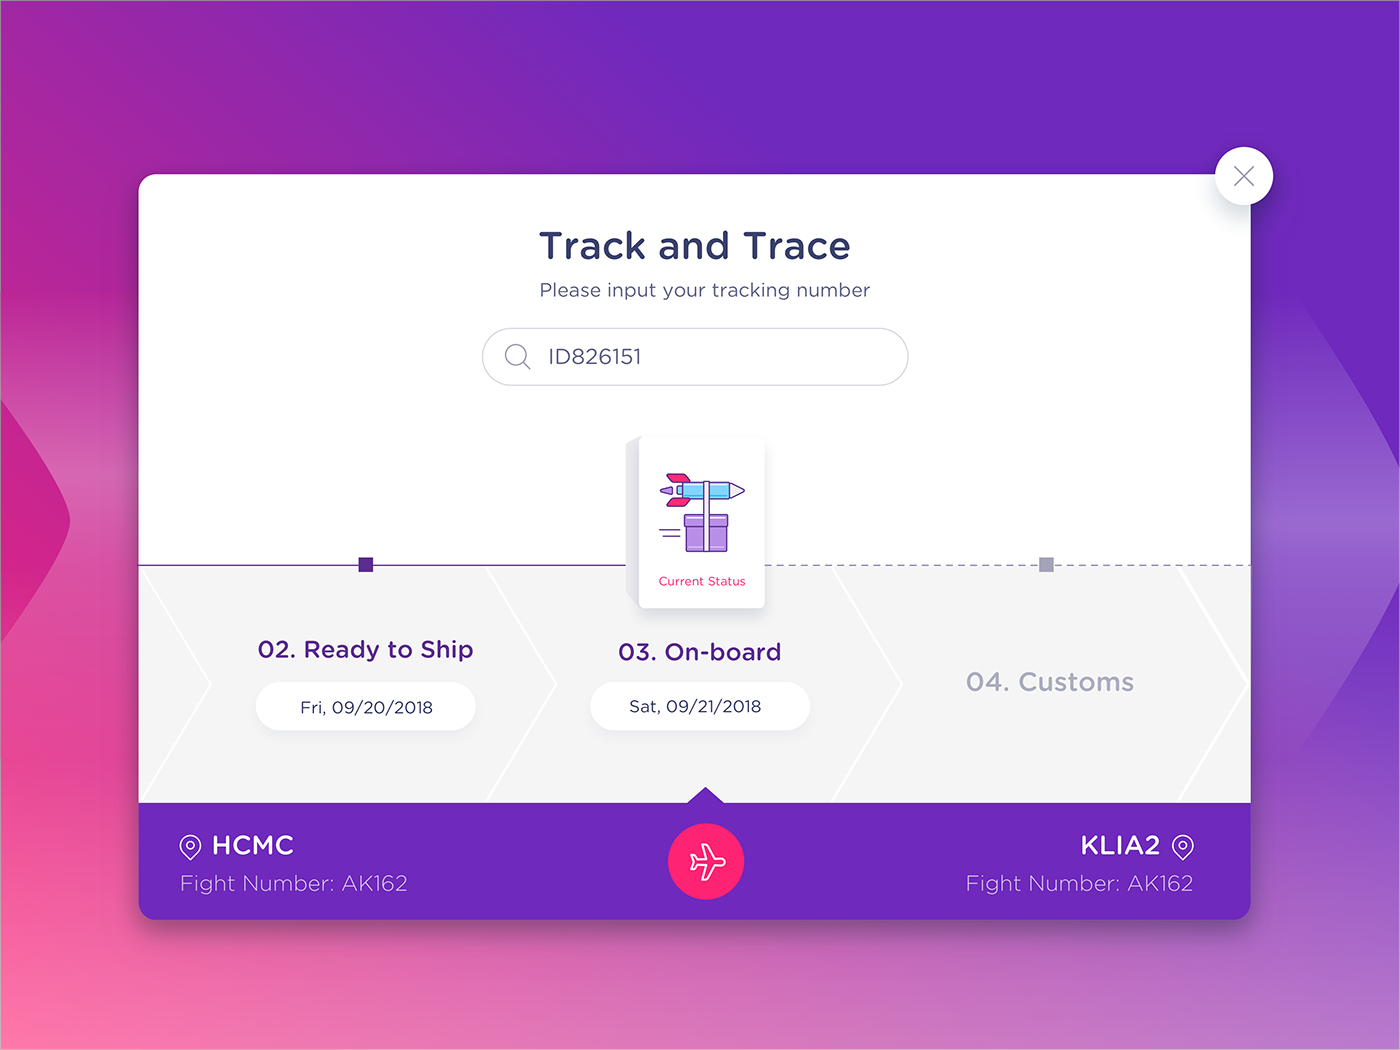 UI design ux Web delivery tracking airport plane Logistics